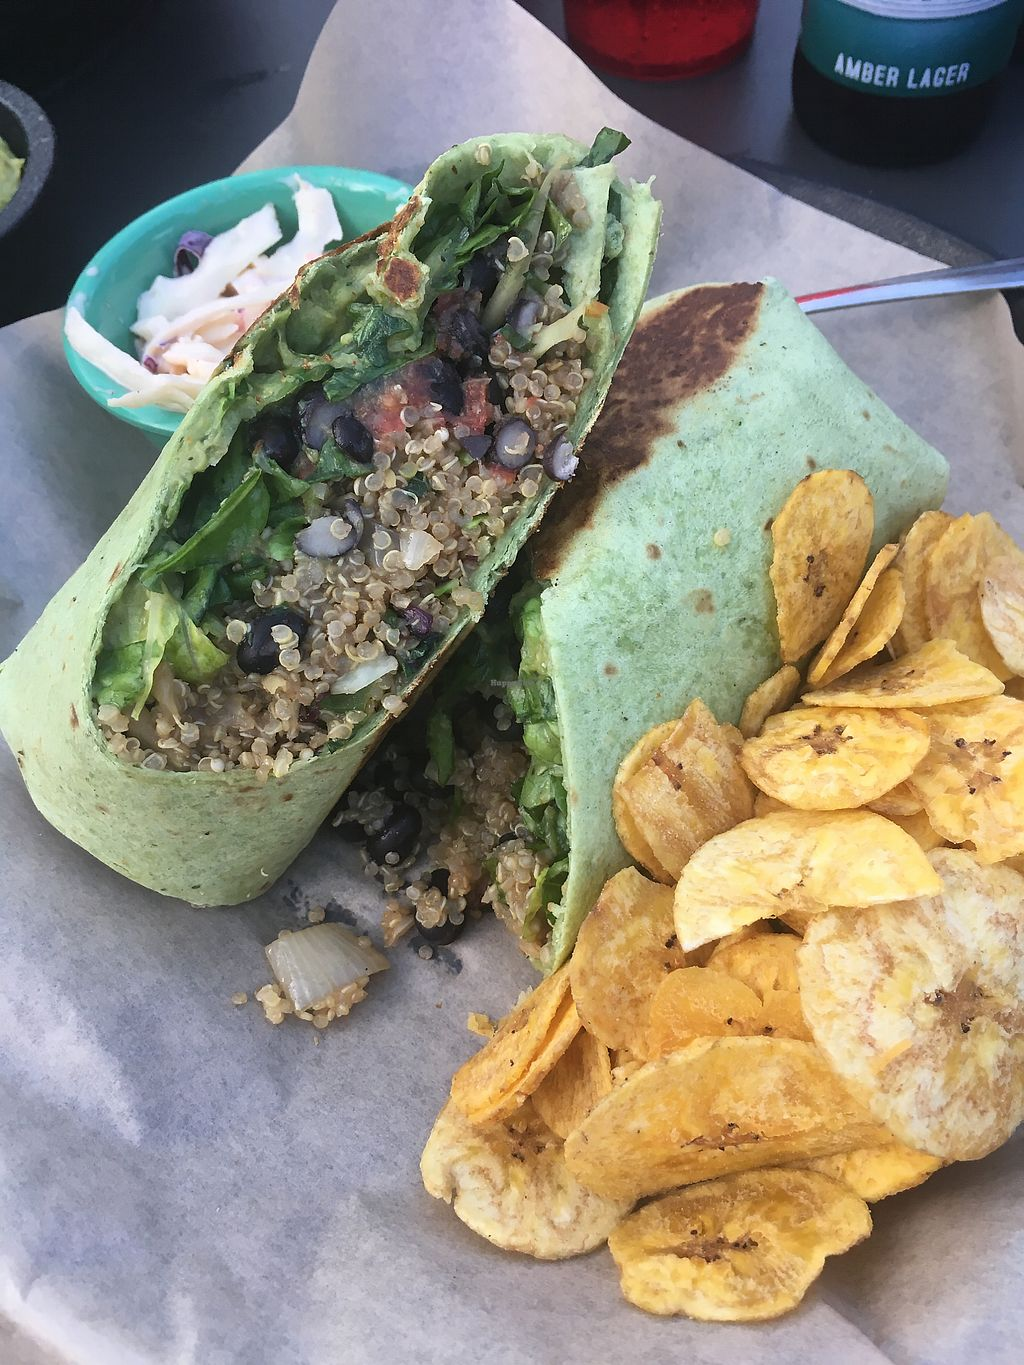 """Photo of The Tiny Turtle  by <a href=""""/members/profile/Mariarosekicks"""">Mariarosekicks</a> <br/>Quinoa wrap with no crema  <br/> November 27, 2017  - <a href='/contact/abuse/image/106038/329726'>Report</a>"""